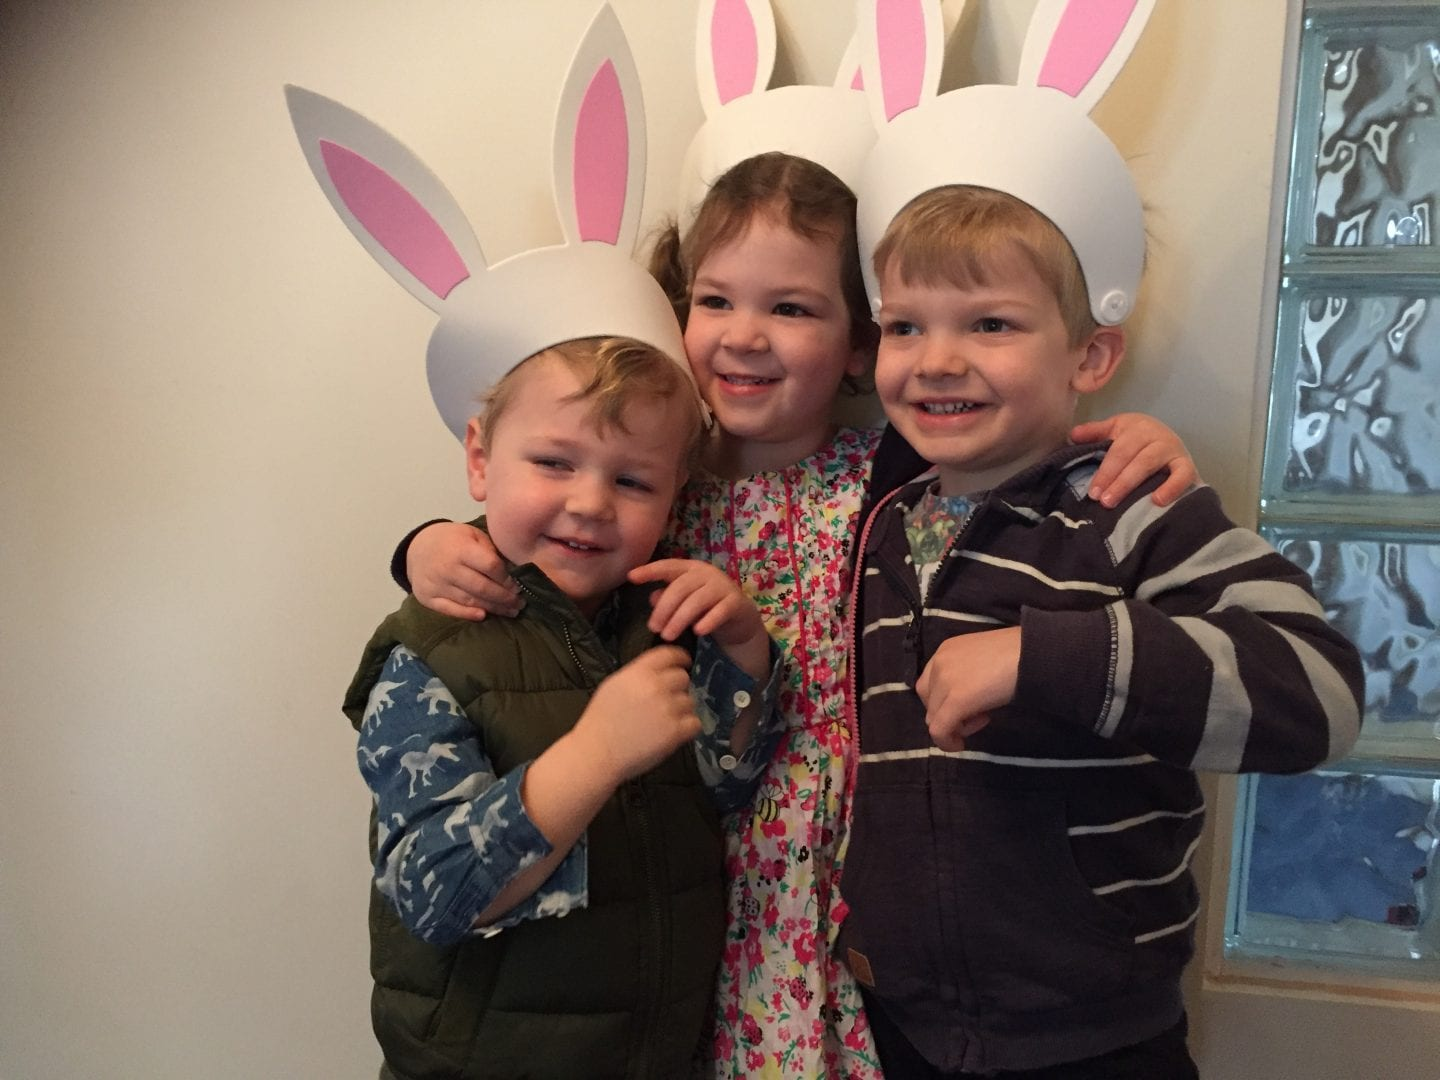 three children wearing bunny ears for Easter